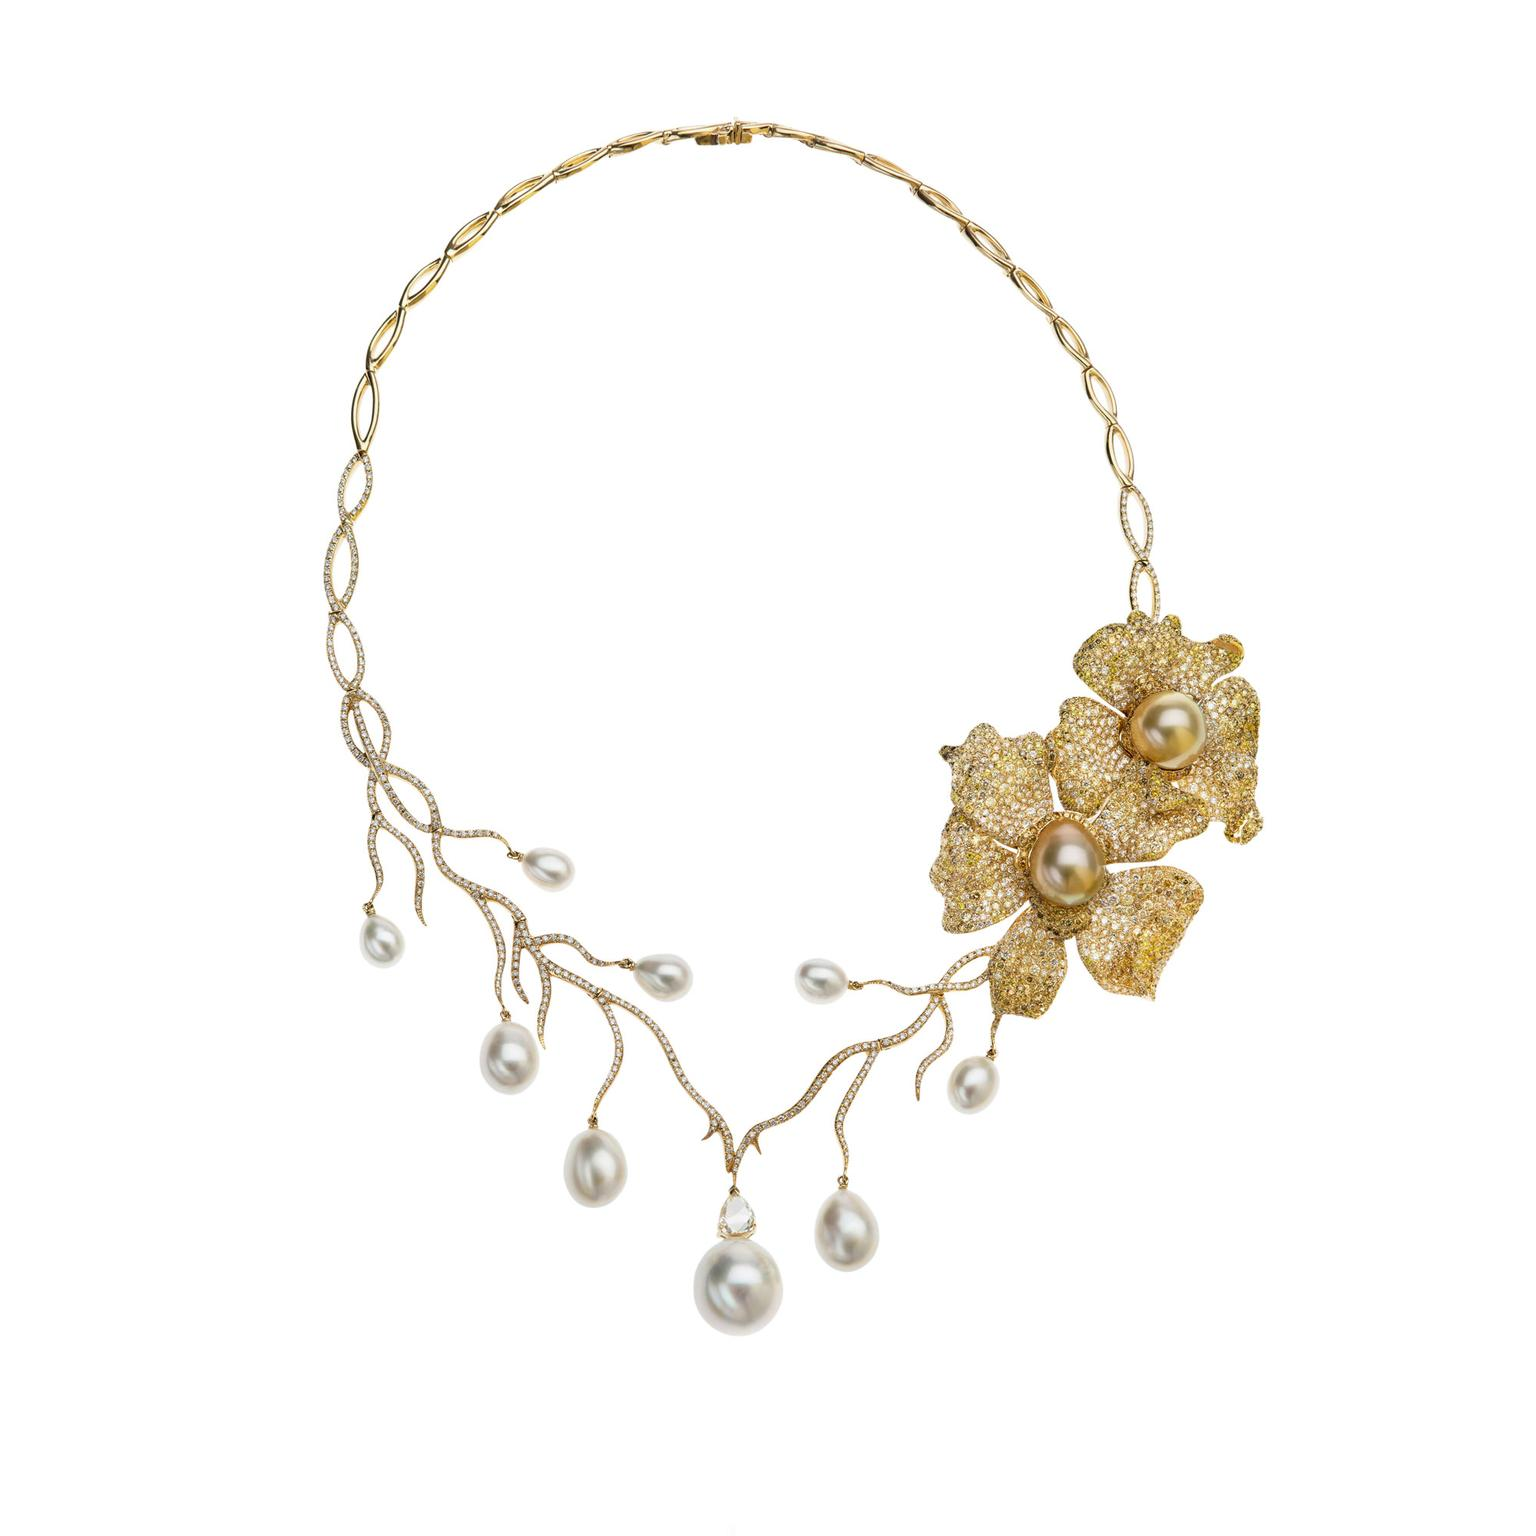 Autore Orange Blossom pearl necklace